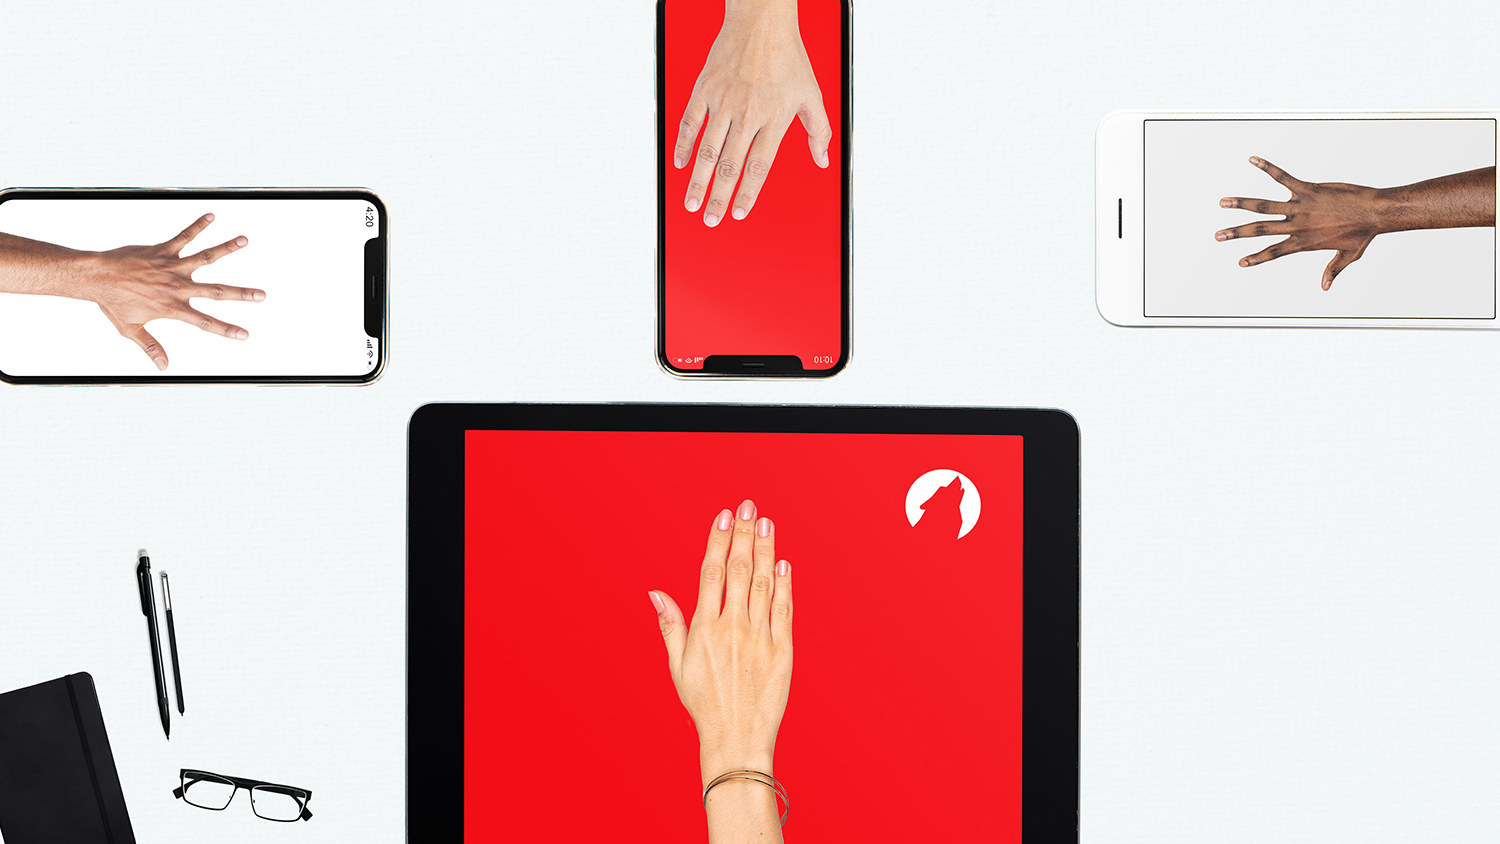 Four hands sitting on top of four separate electronic devices